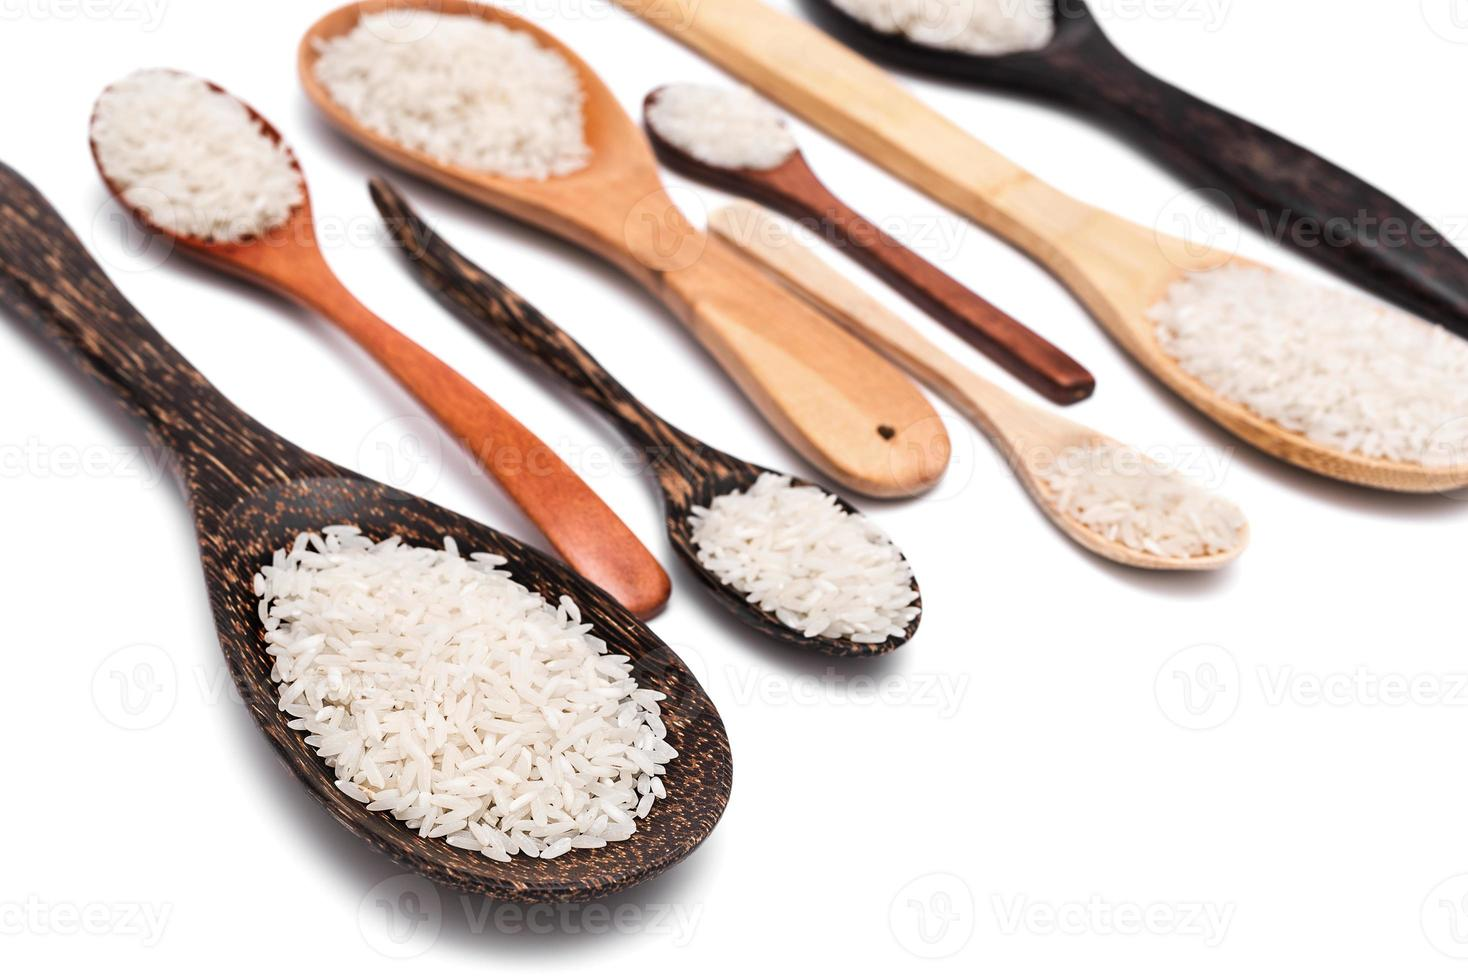 Set of different wooden spoons with white rice photo